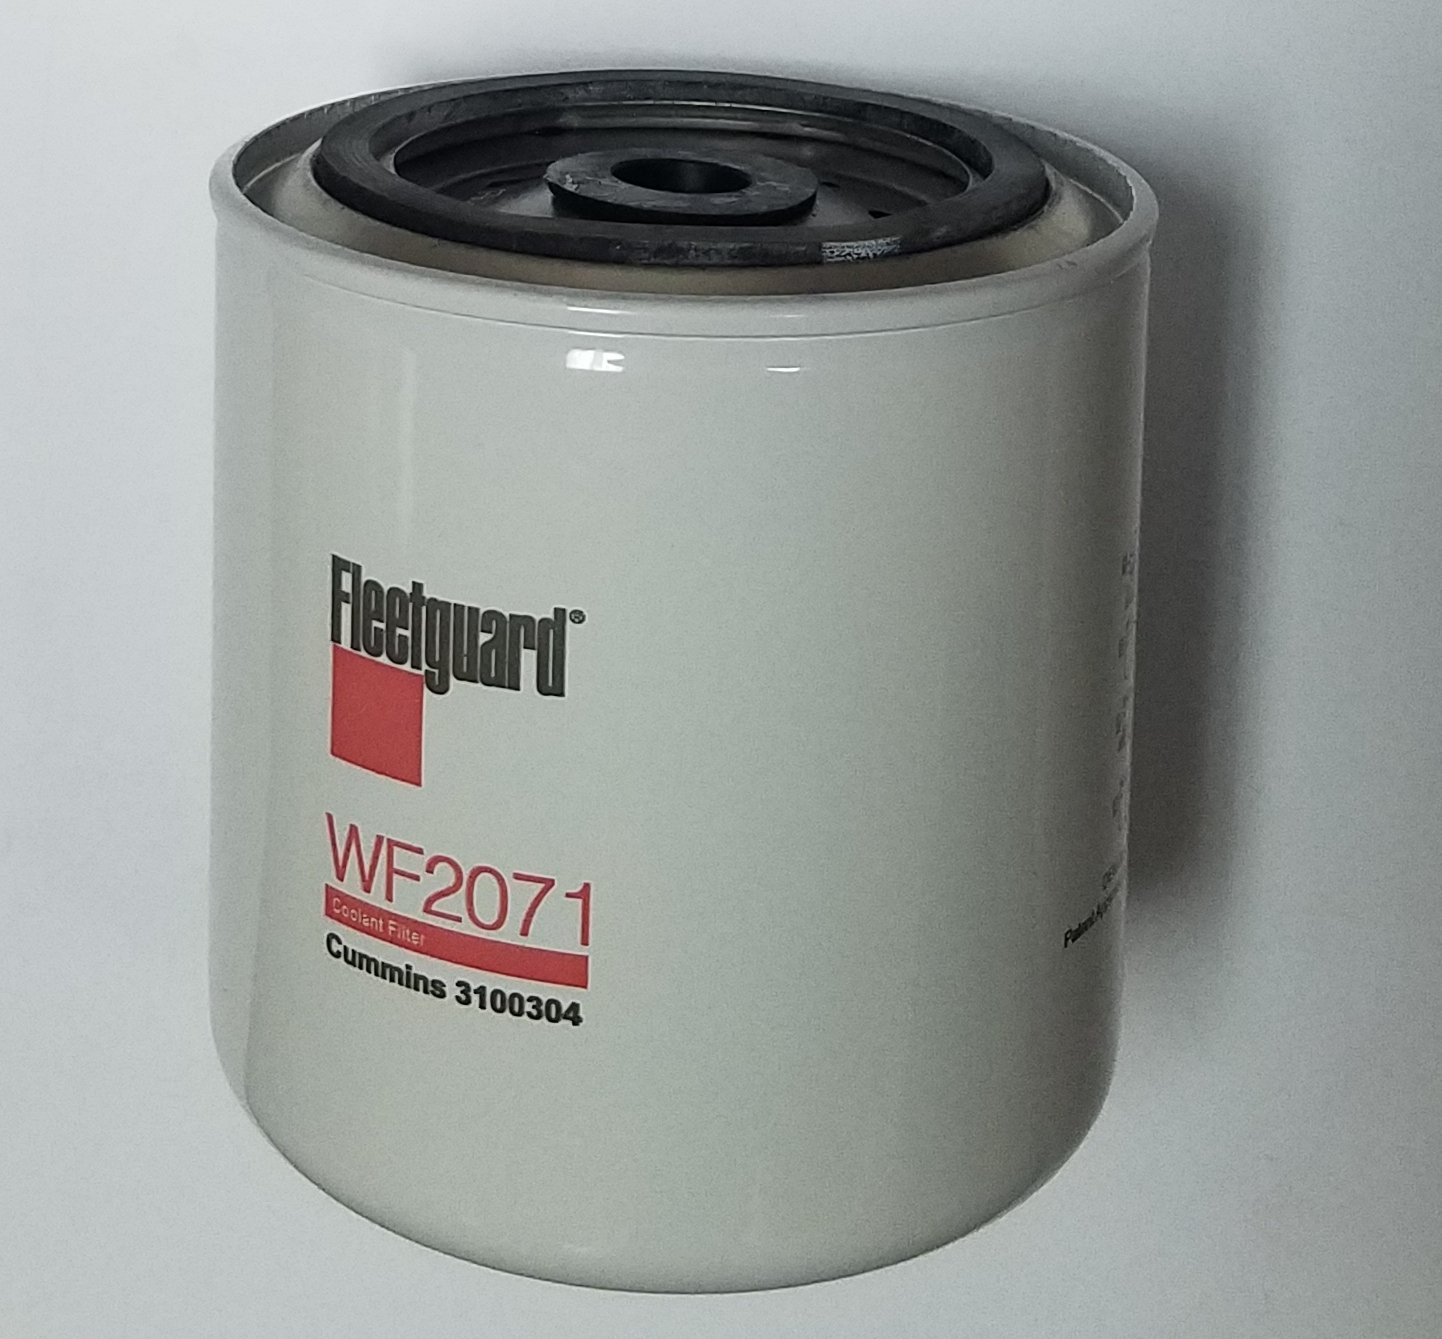 Fleetguard WF2071, Coolant Filter, for Cummins